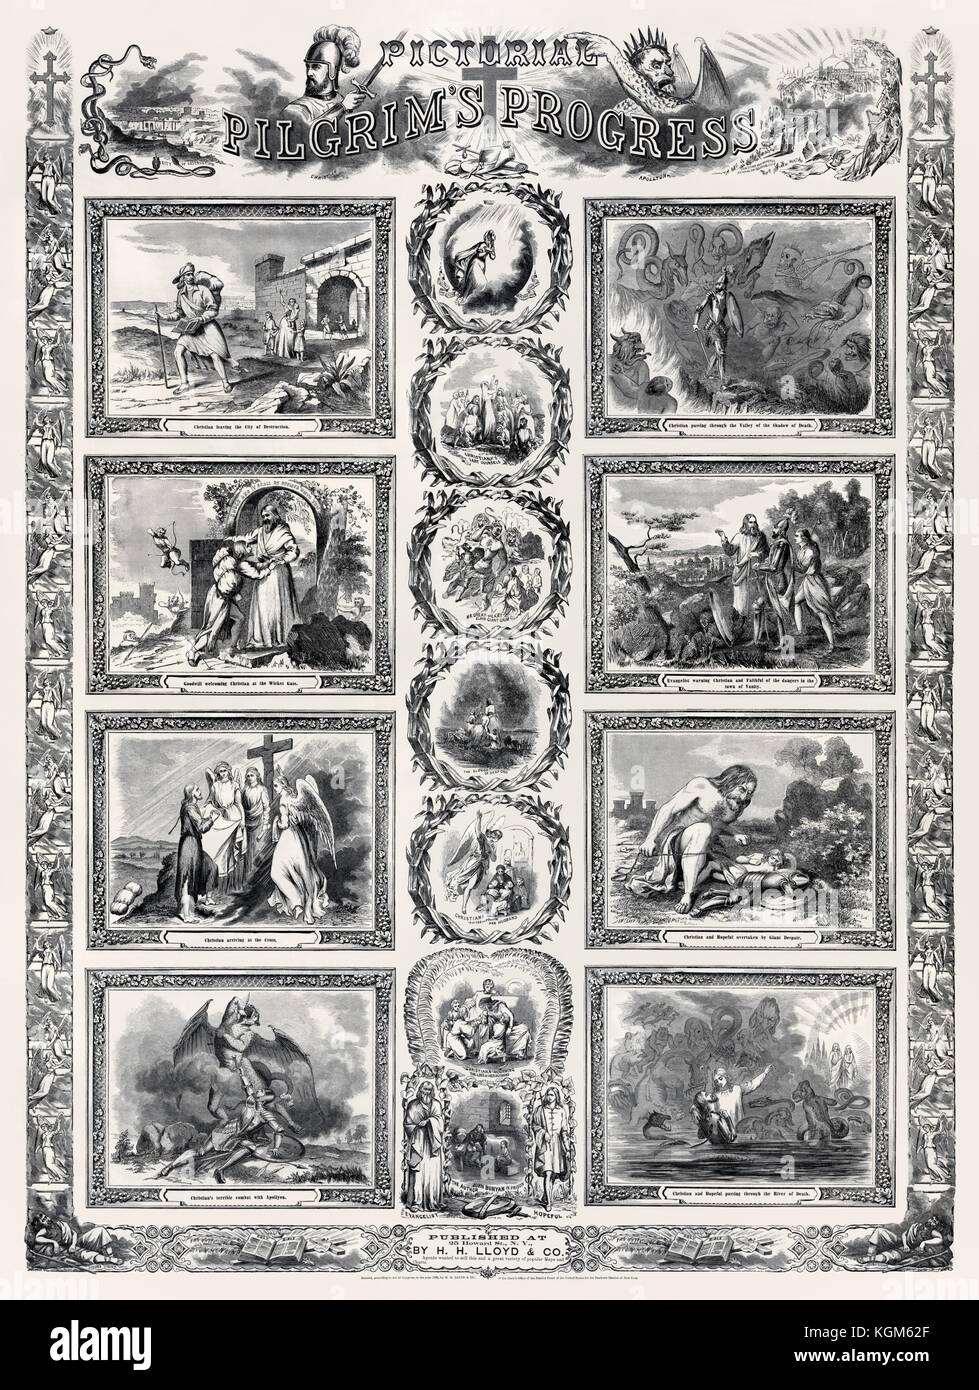 'Pictorial Pilgrim's Progress' showing various events during Christian's journey from the City of Destruction - Stock Image